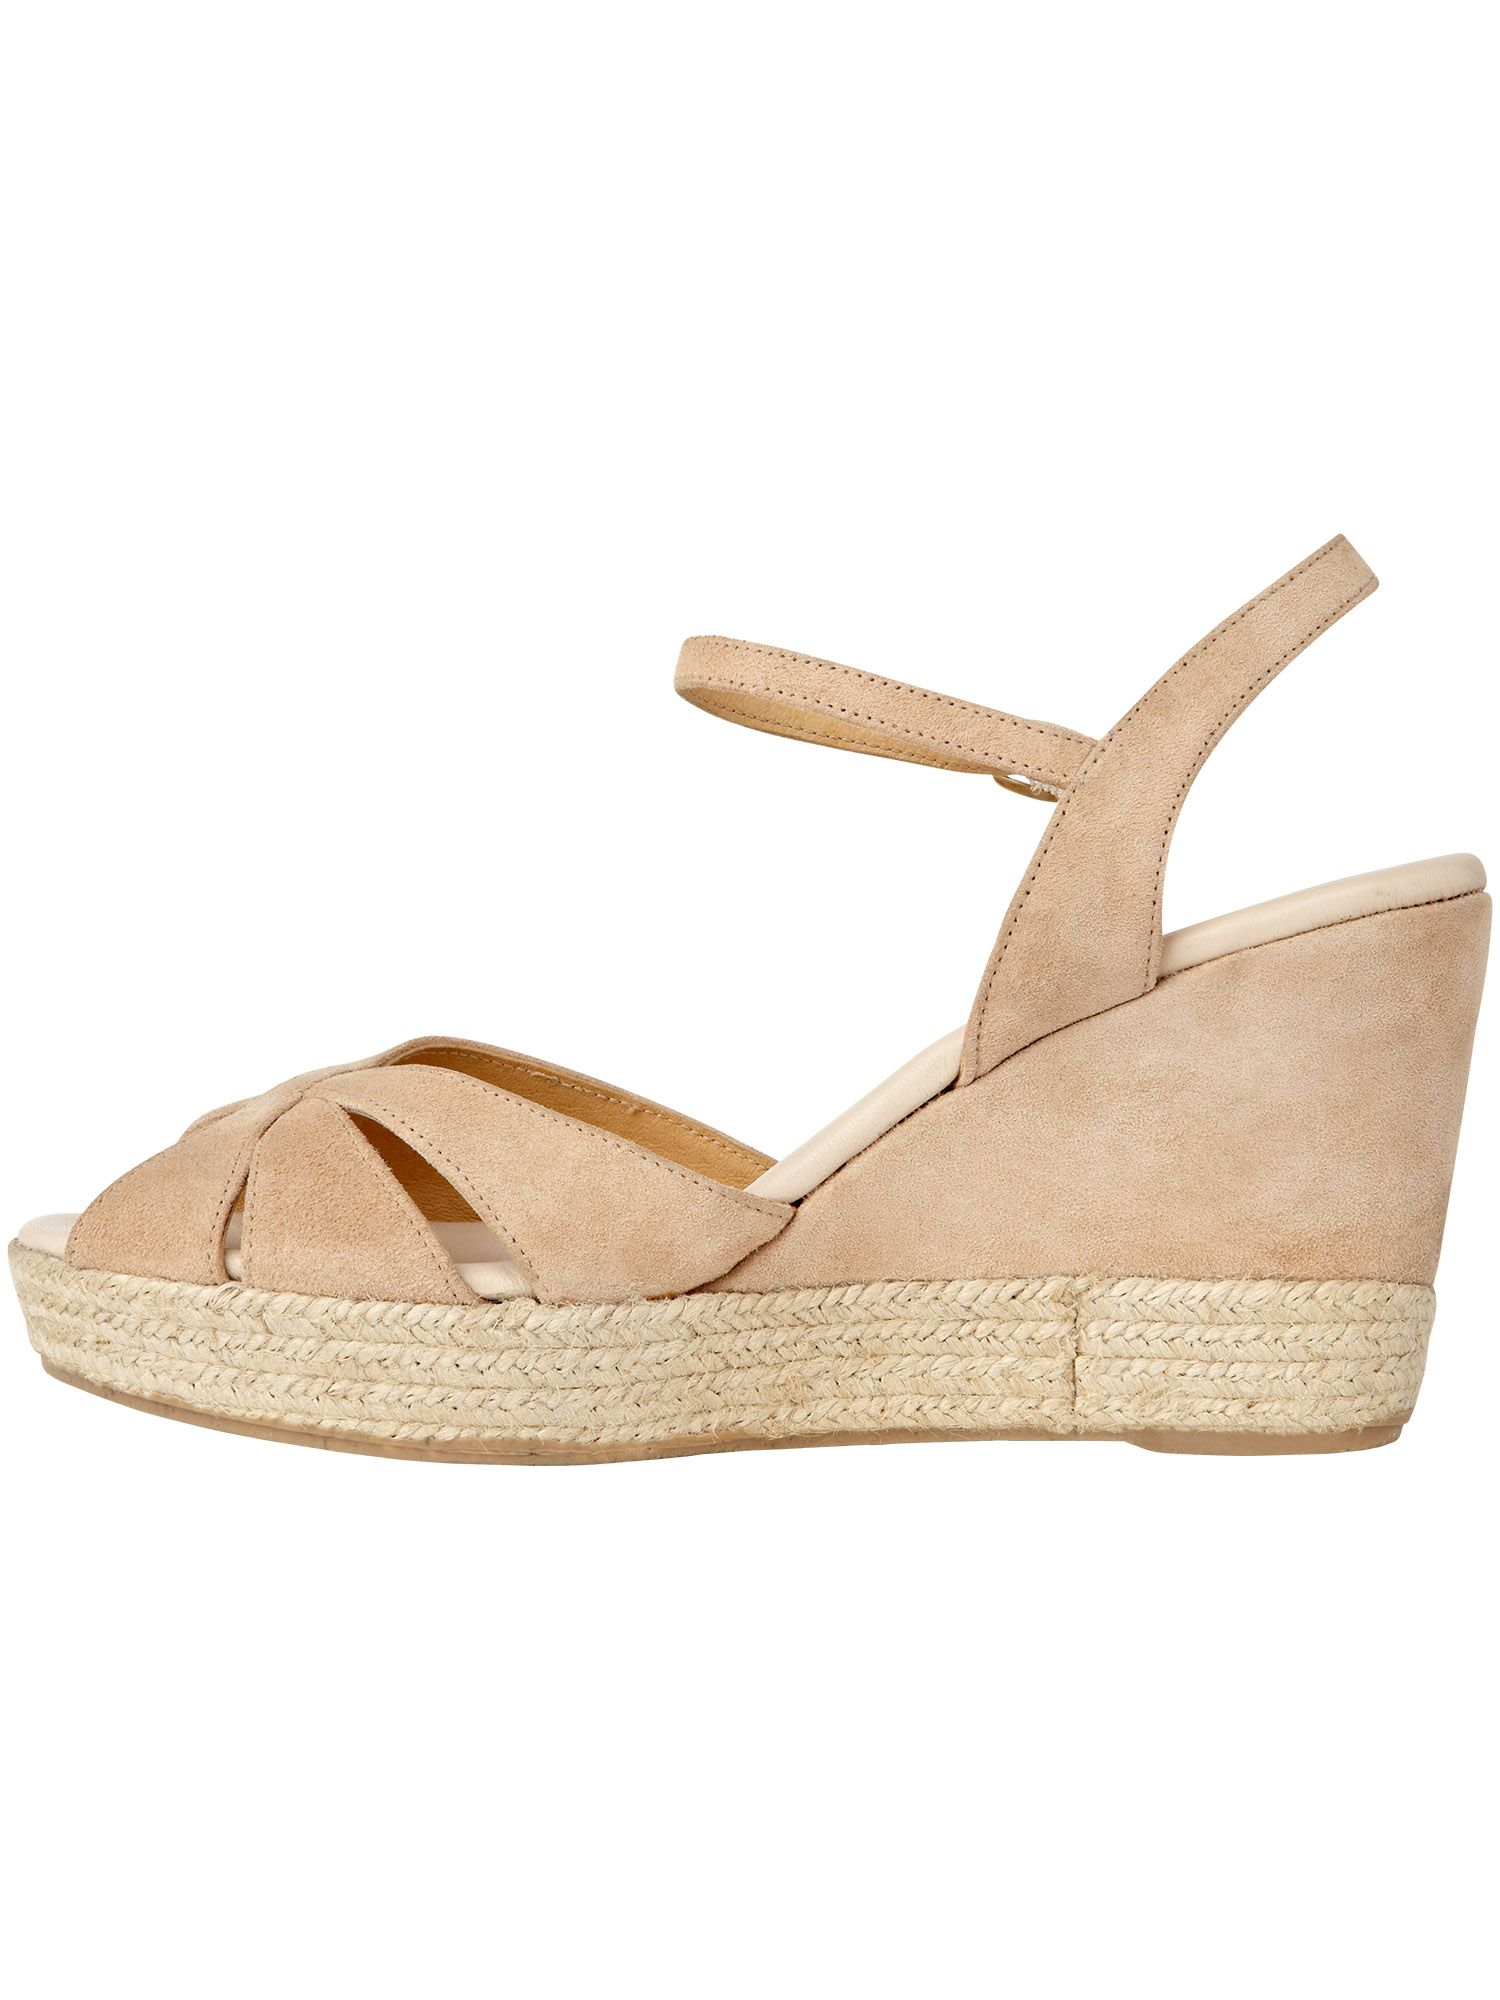 Dahlia espadrille wedge sandals